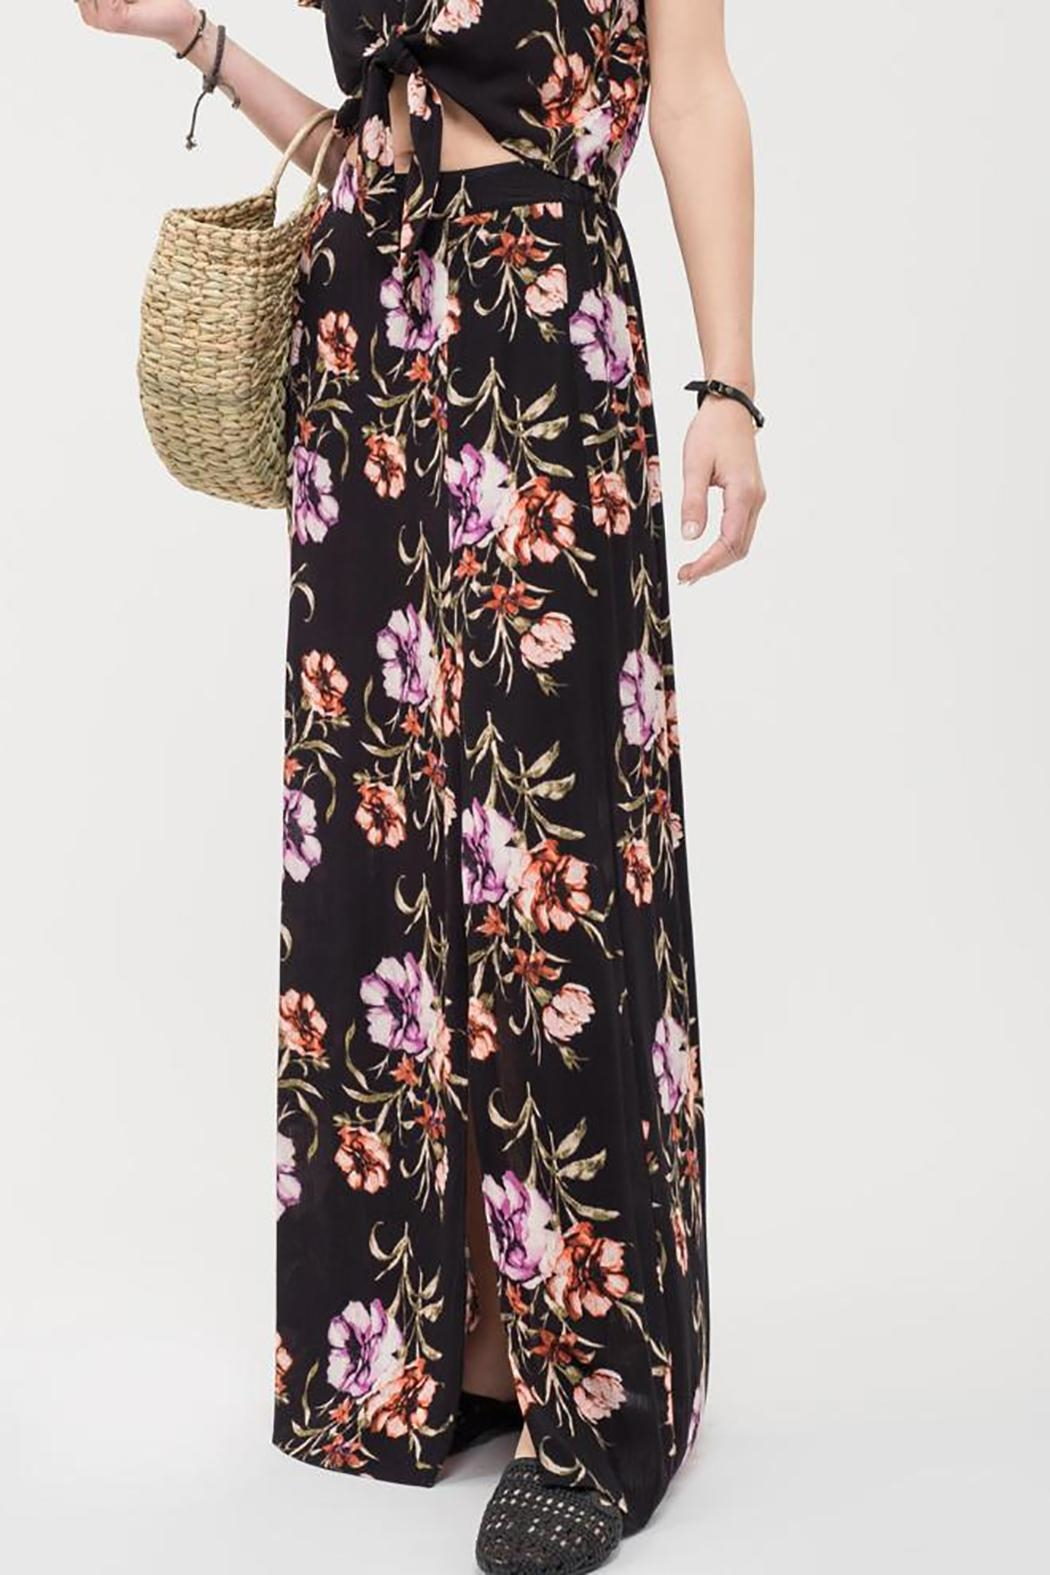 Blu Pepper Floral Maxi Skirt - Side Cropped Image